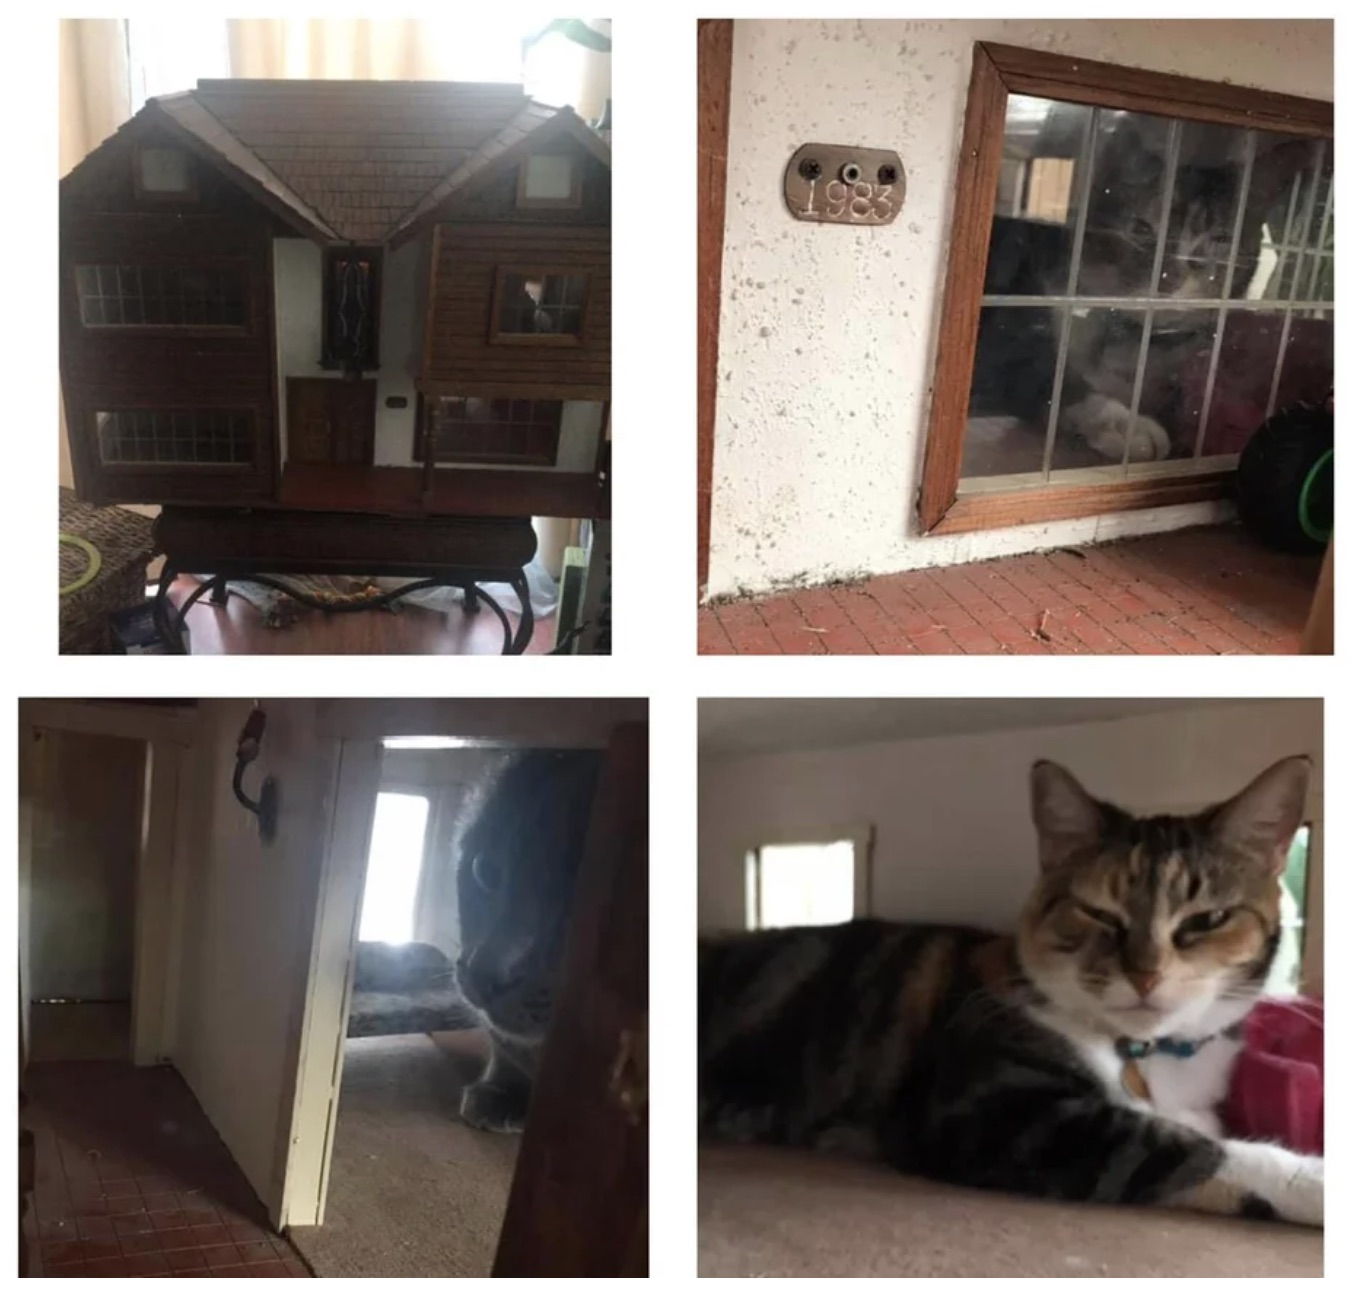 https://www.reddit.com/r/AnimalsBeingJerks/comments/j1xqde/friend_got_a_doll_house_for_the_kids_cats/